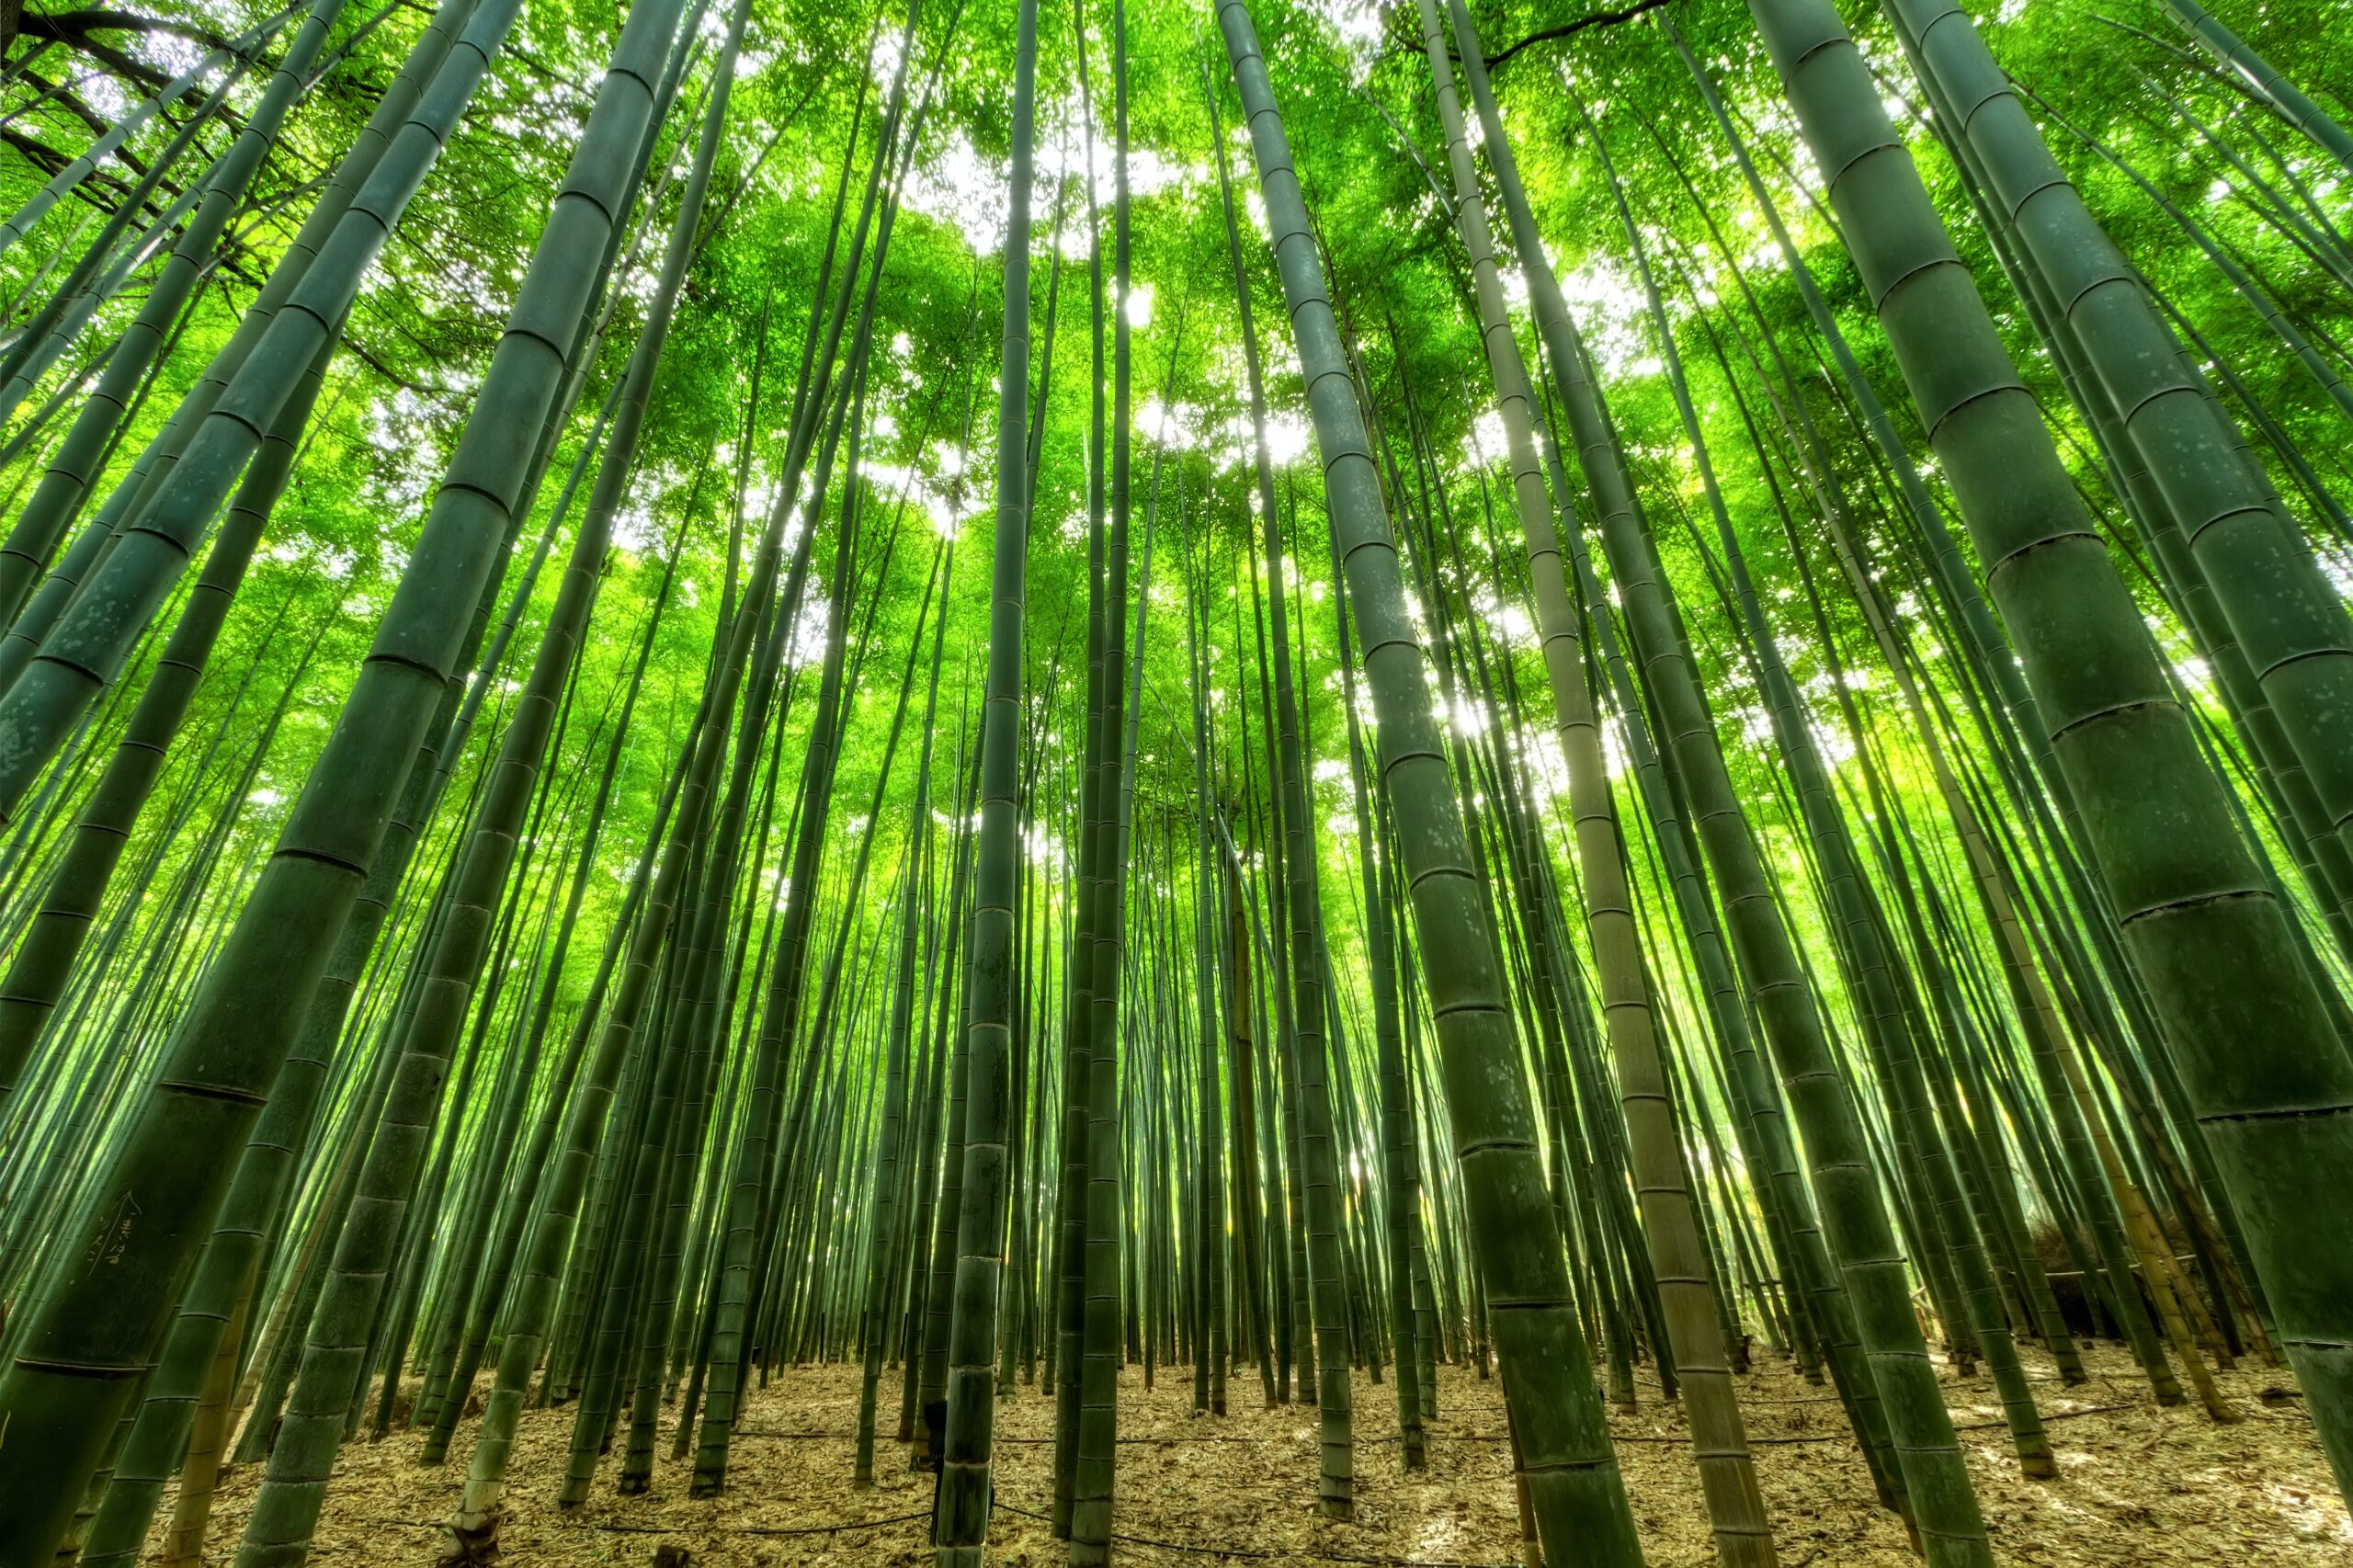 bamboo trees with leafy canopy Photo by Emre Orkun KESKIN from Pexels